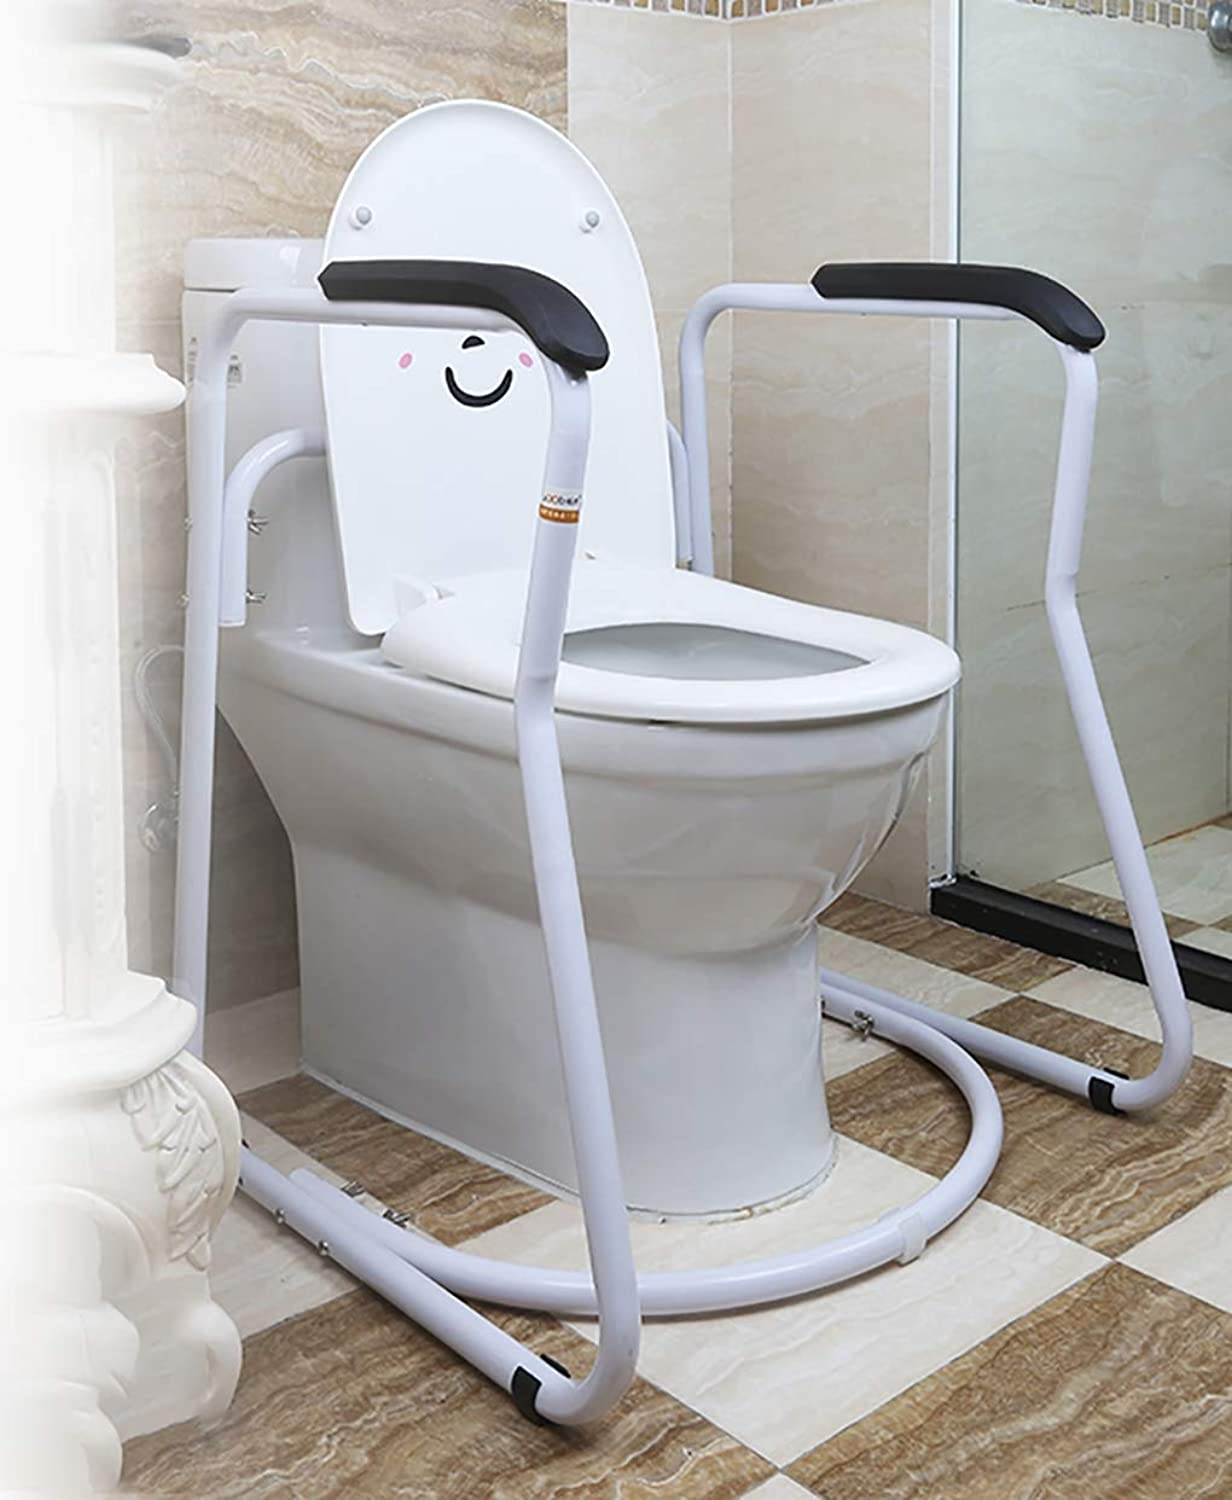 Free-Standing Toilet Frame, trapezoidal Adjustable Toilet Surround, Standard Independent Safety aid for The Elderly Disabled, Suitable for Most Toilets,PUhandrail